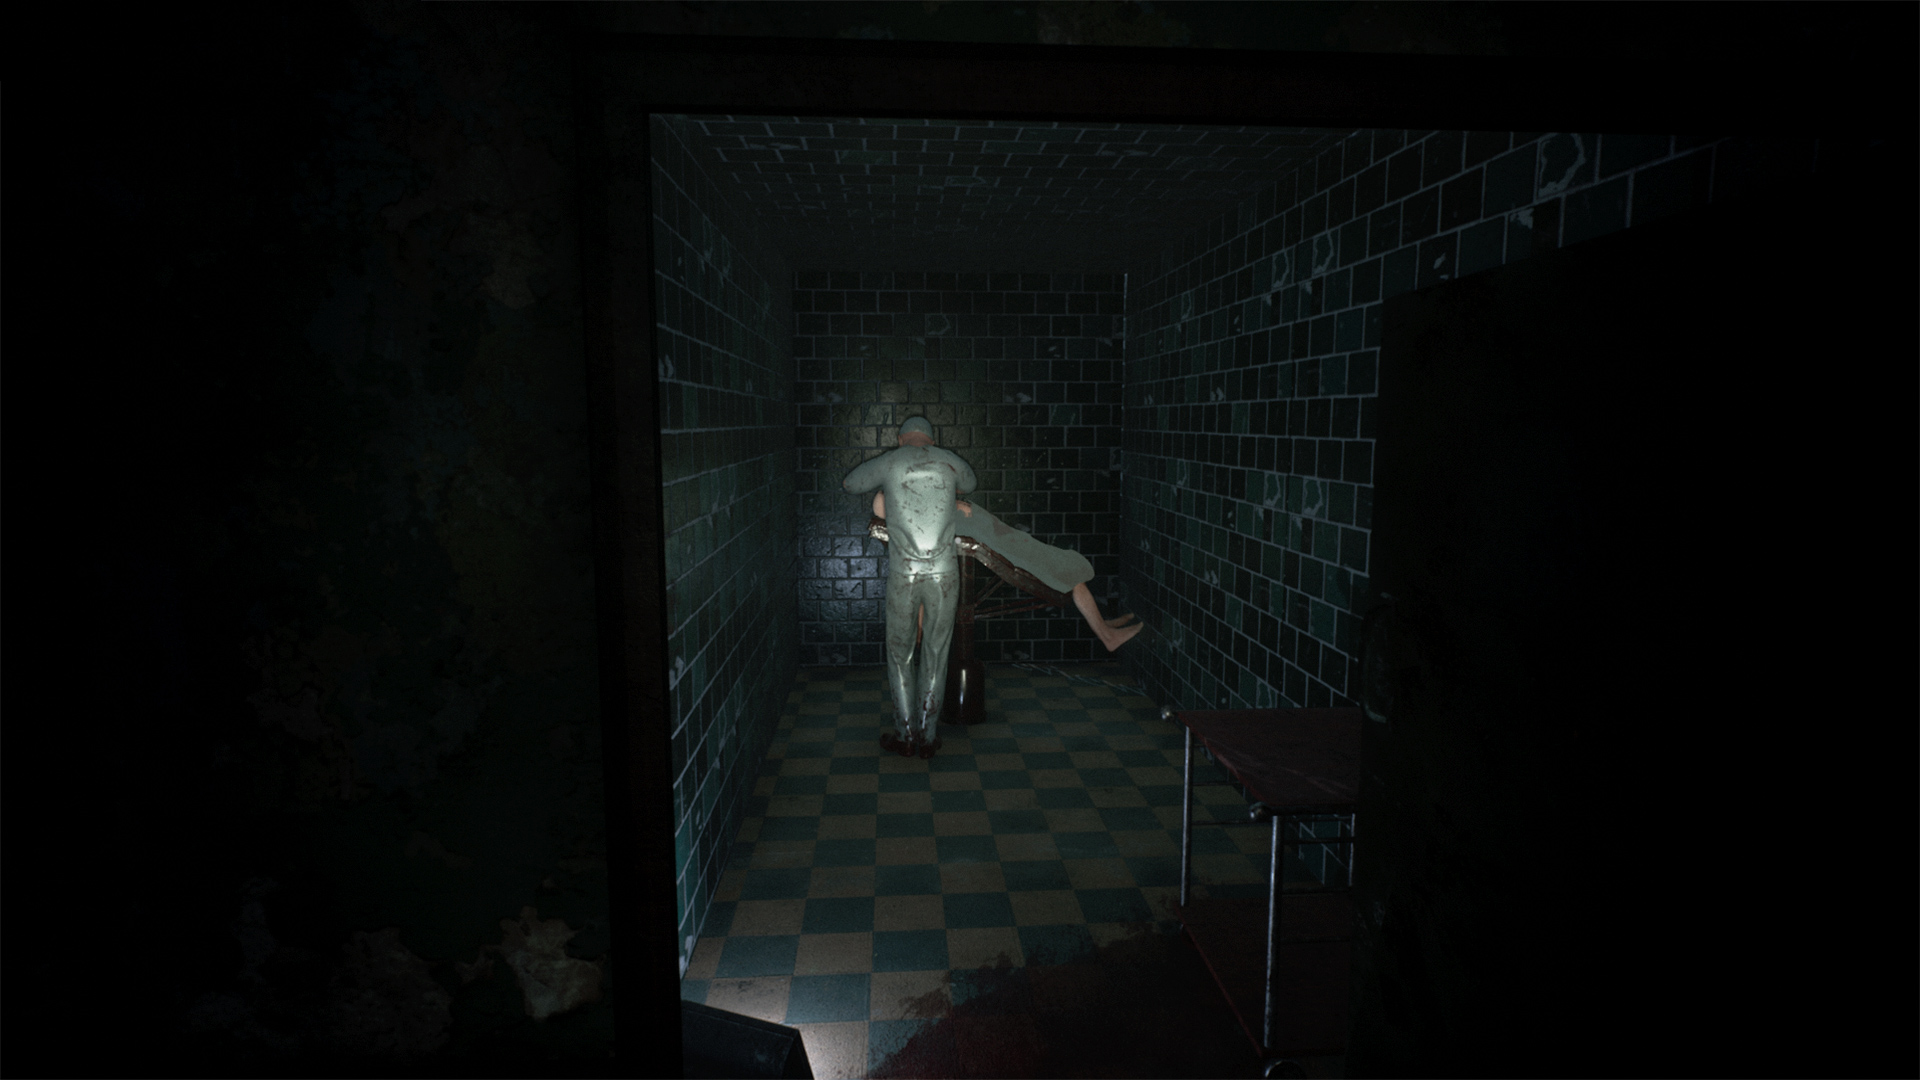 A Mysterious doctor doing his job in an abandoned hallway